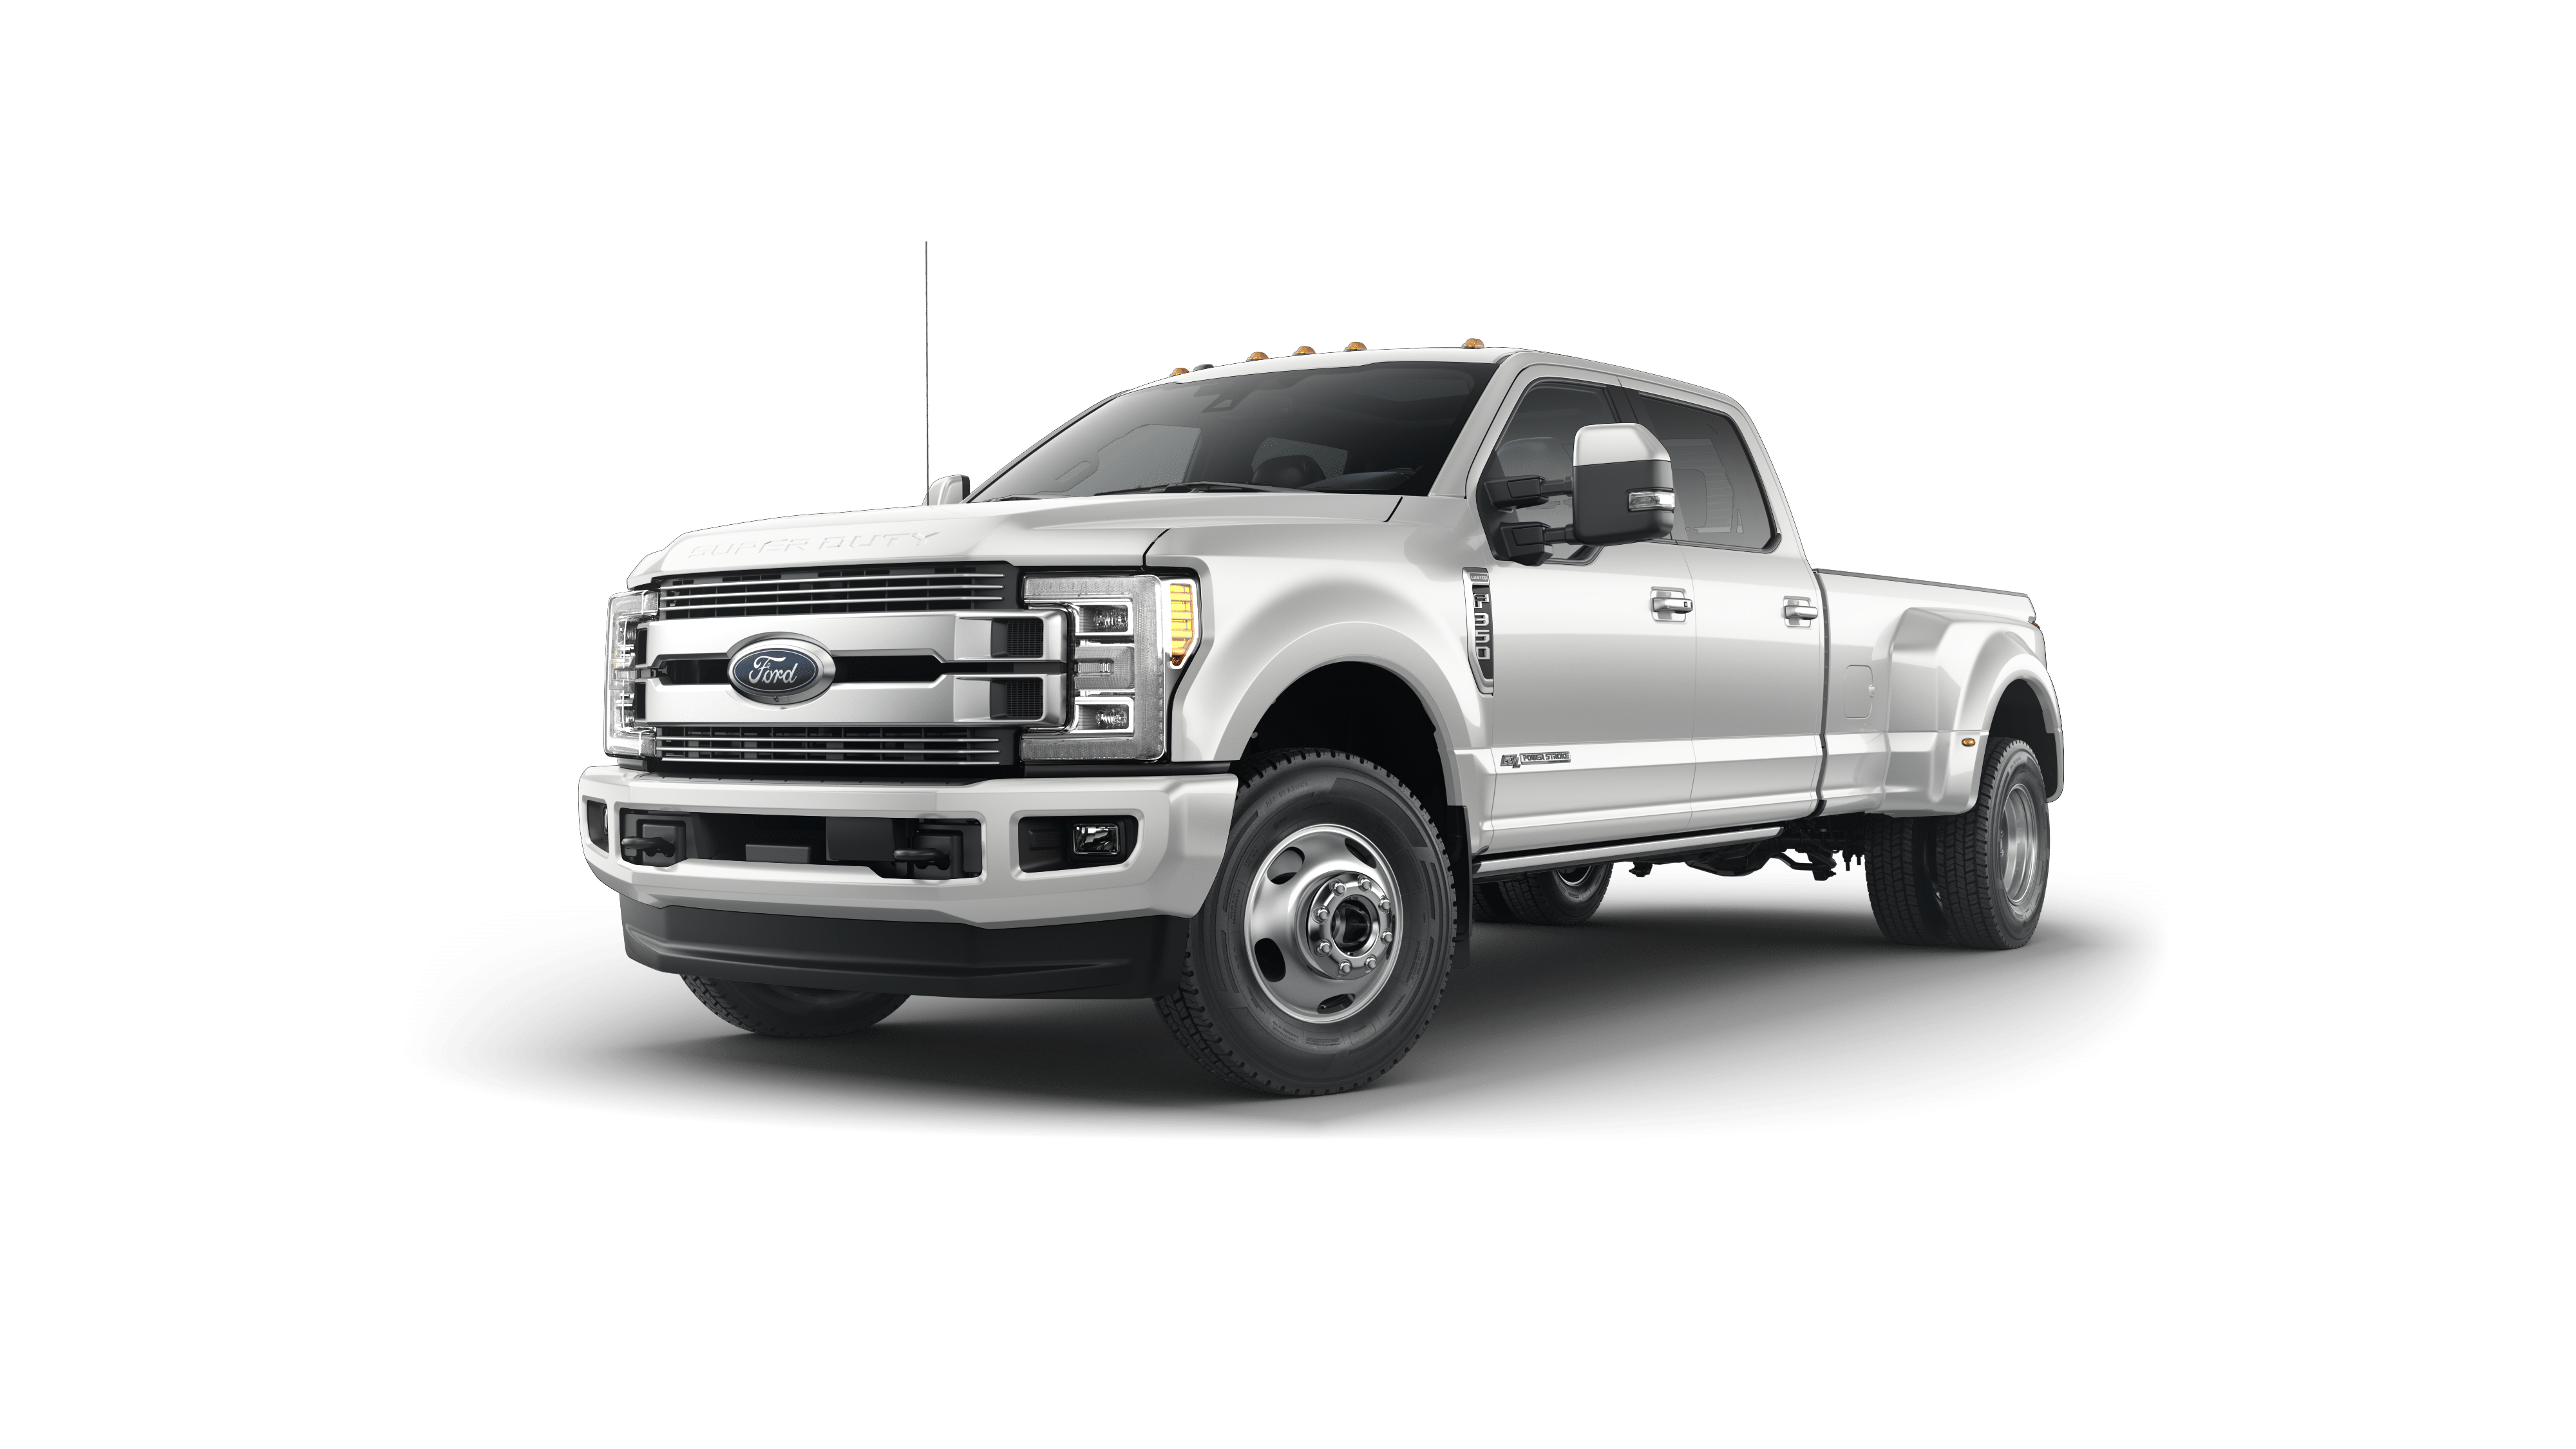 2019 Ford Super Duty F 350 Drw For Sale In Mcdonough